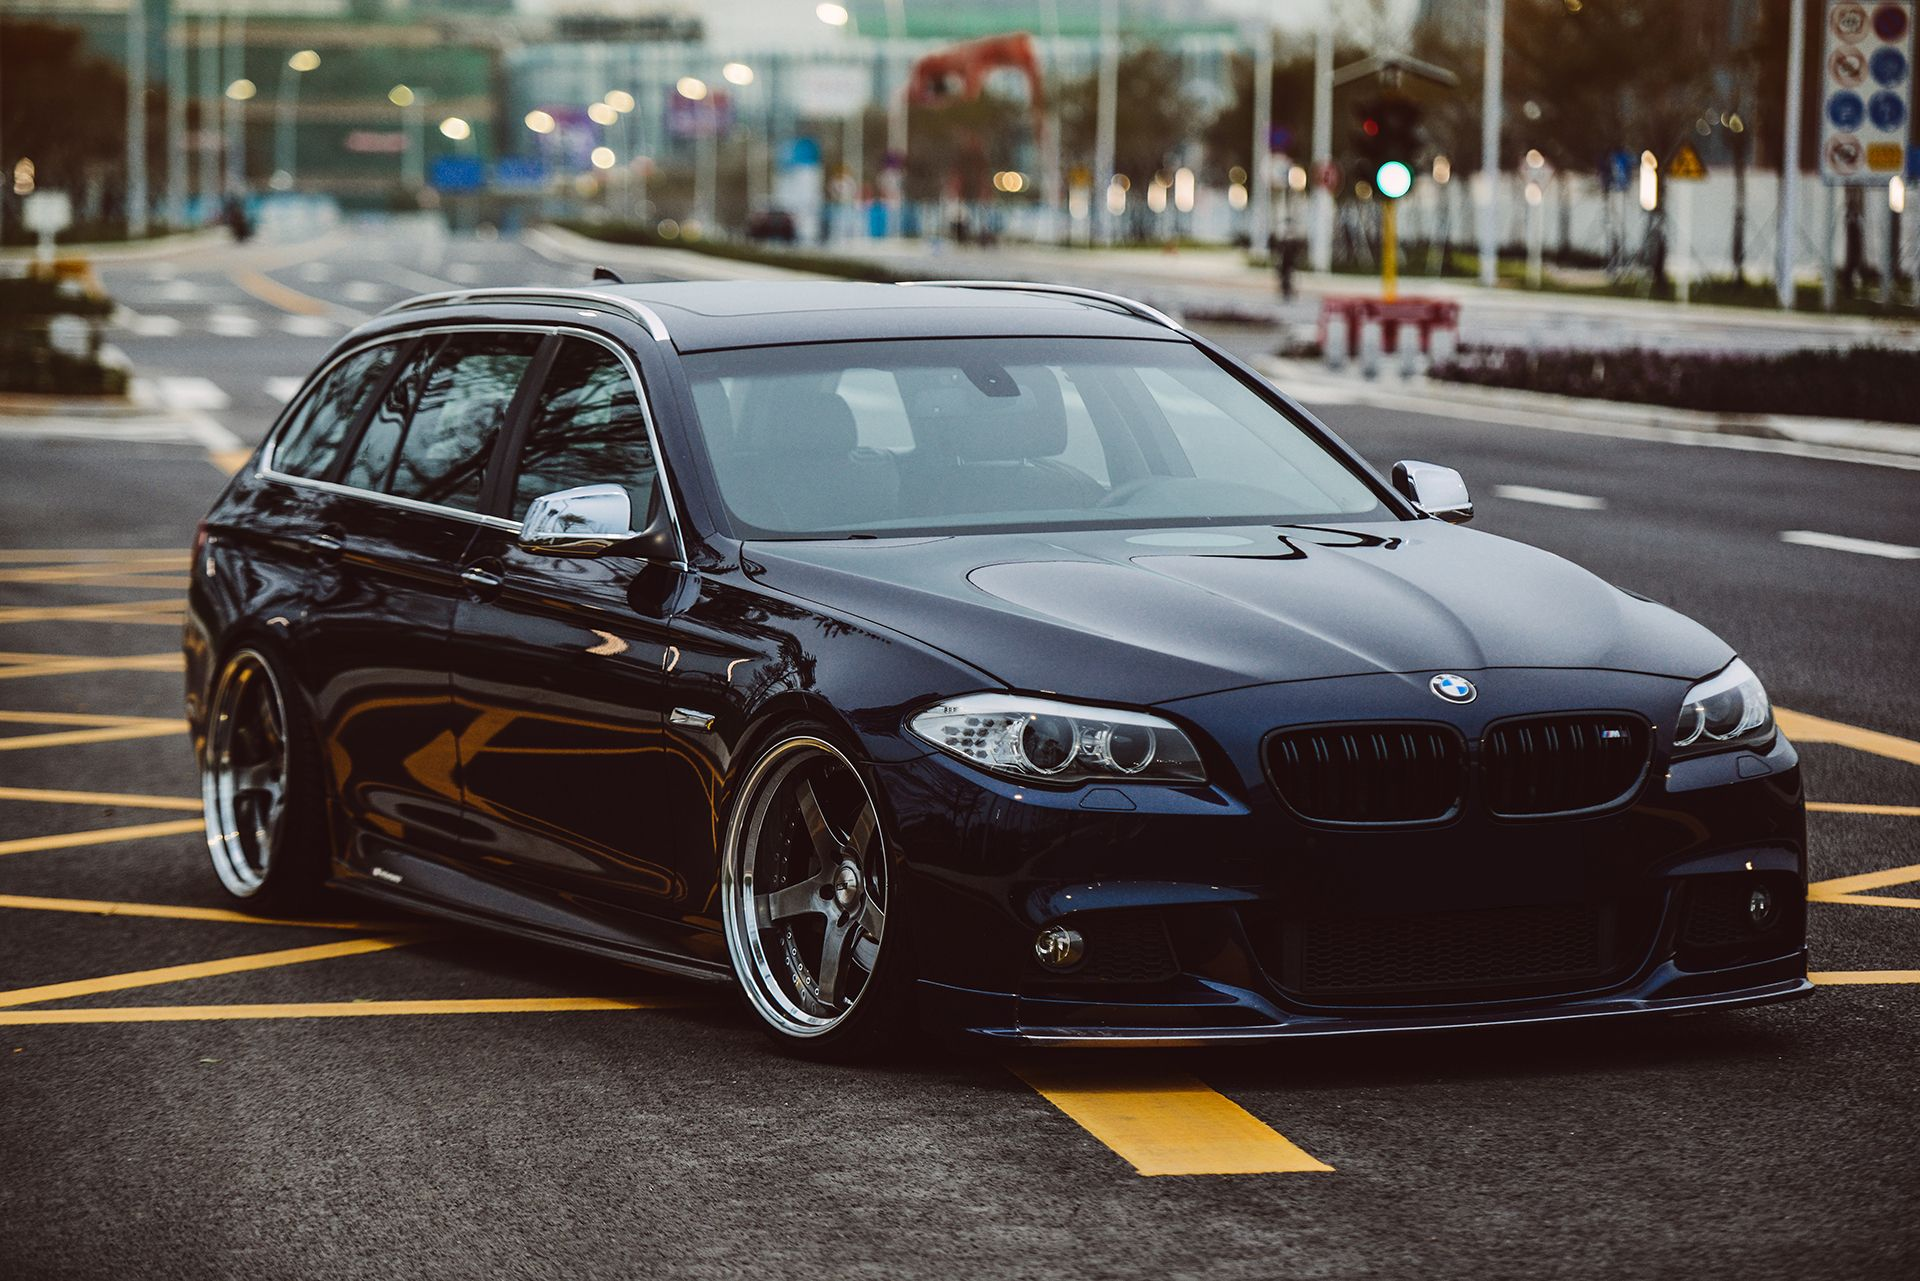 bmw f11 5er touring bmw f11 5 series wagon pinterest bmw cars and bmw touring. Black Bedroom Furniture Sets. Home Design Ideas